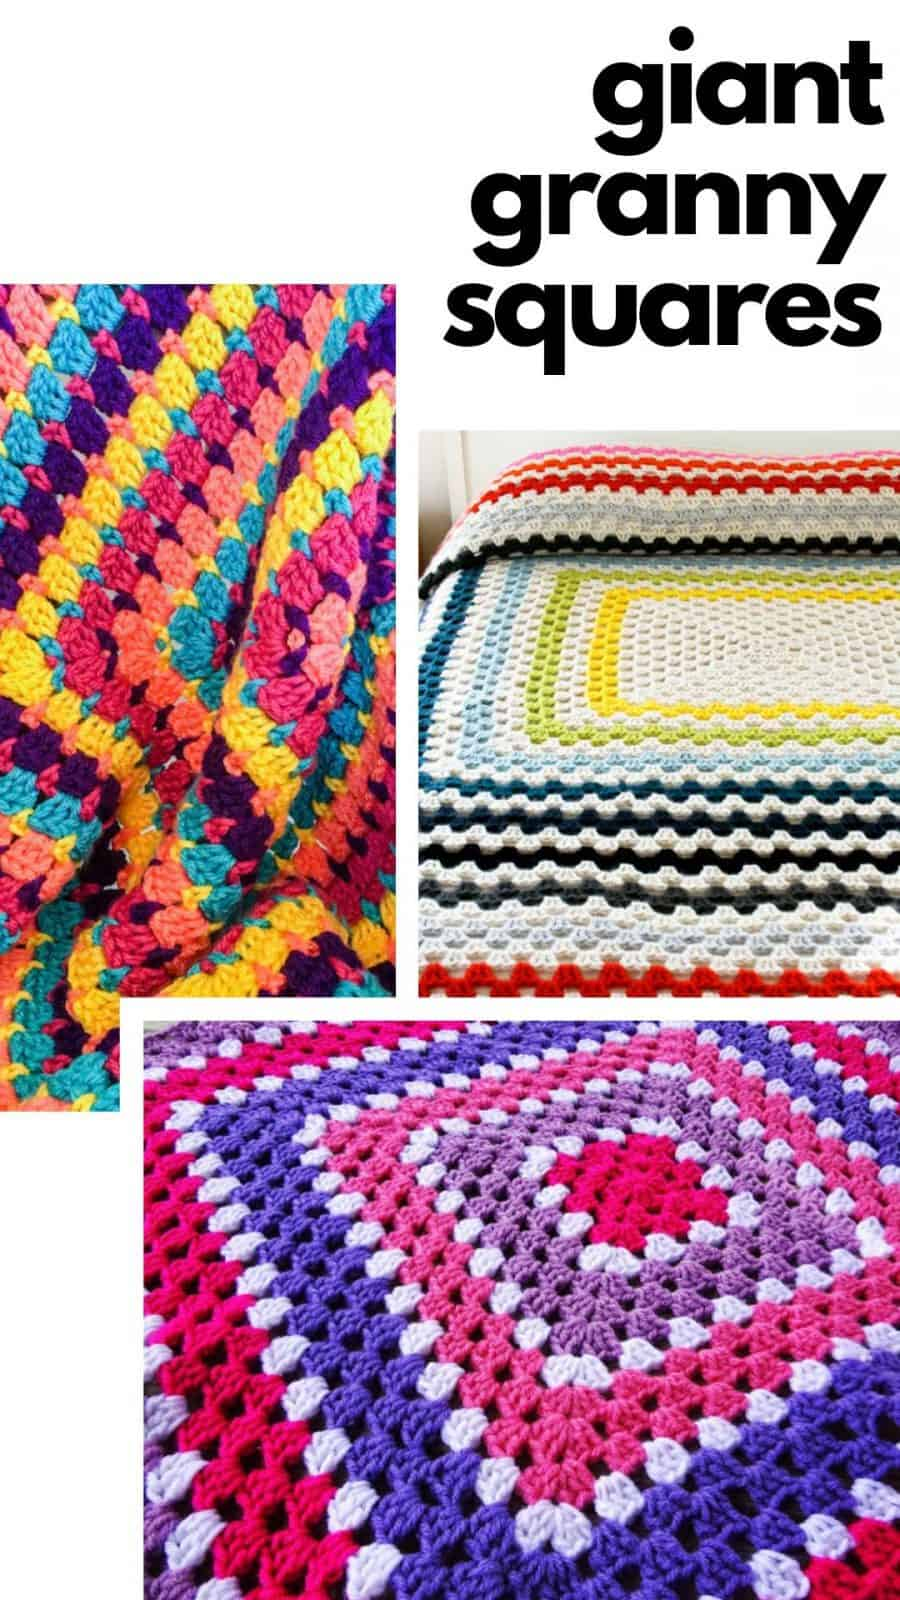 These giant granny squares are gorgeous and work for baby blankets right through to throws!